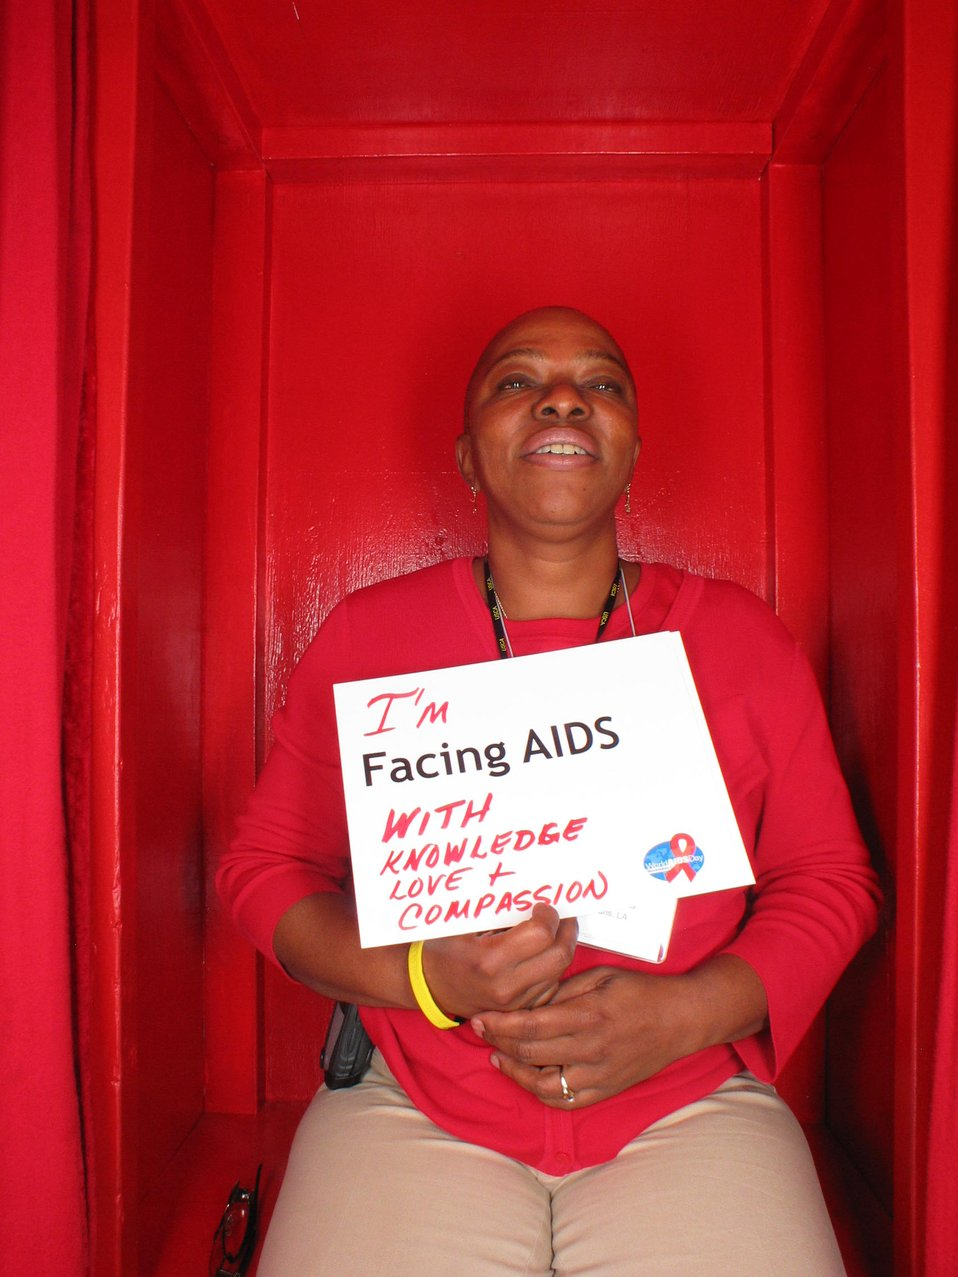 I'm Facing AIDS with knowledge, love and compassion.